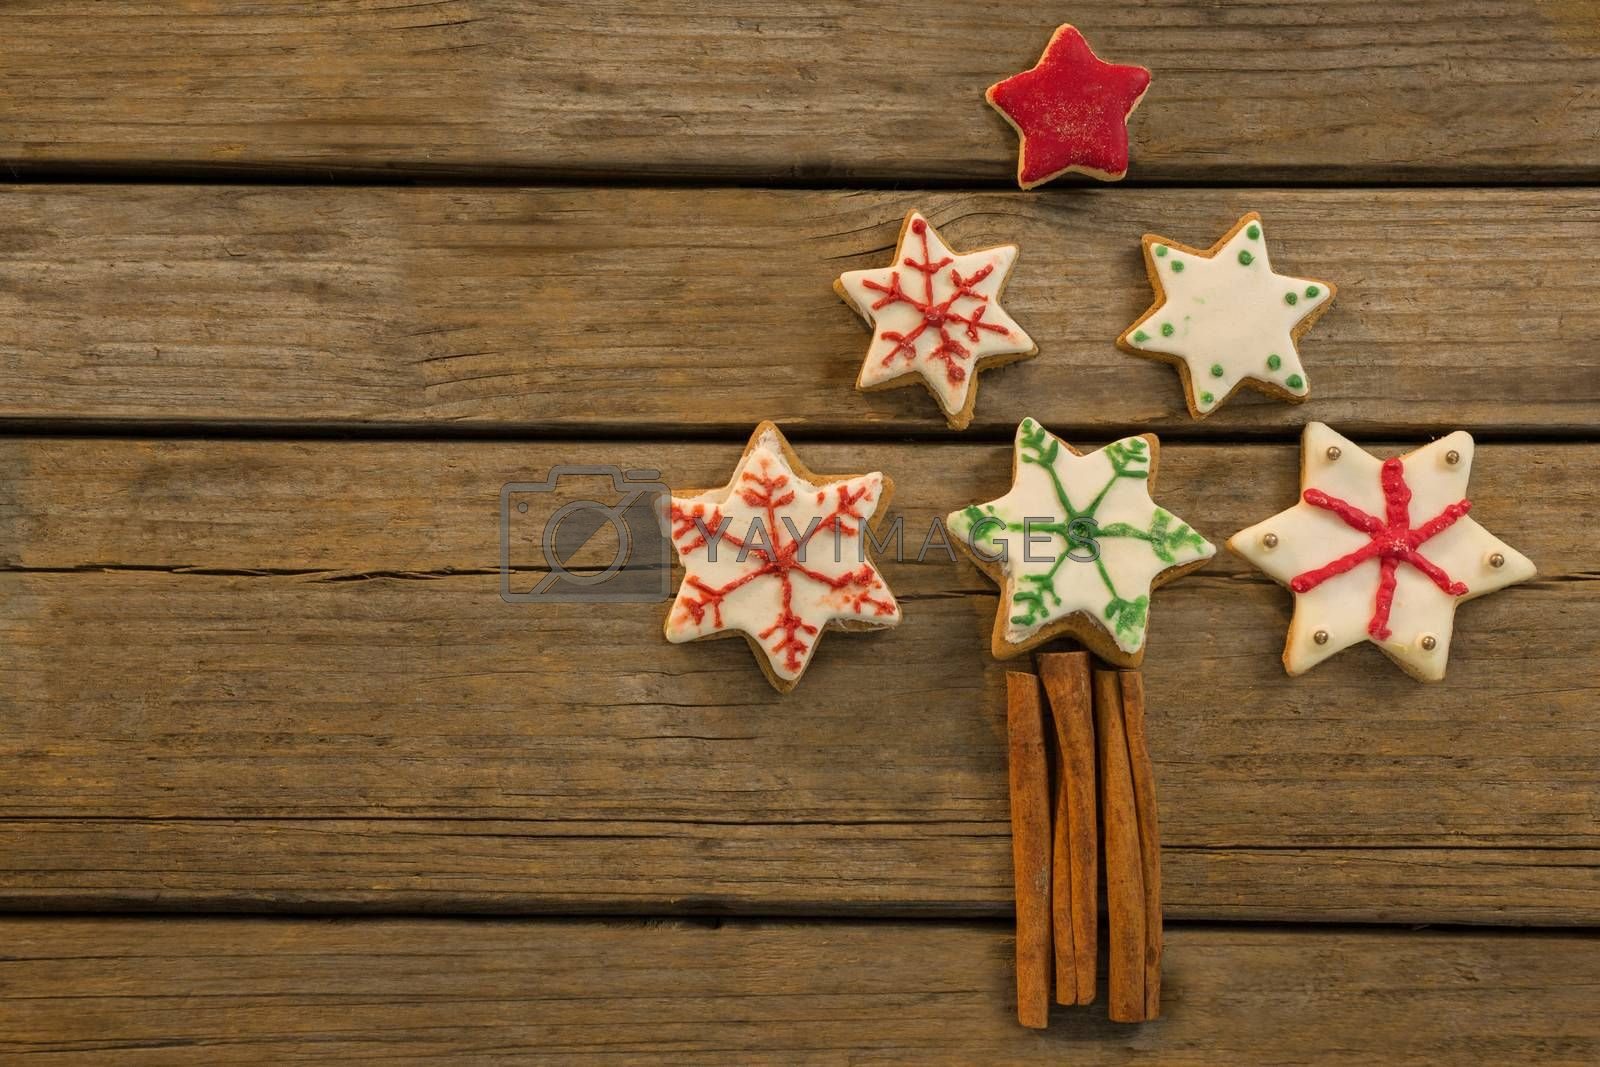 Overhead view of Christmas tree made with star shape cookies and cinnamon sticks by Wavebreakmedia